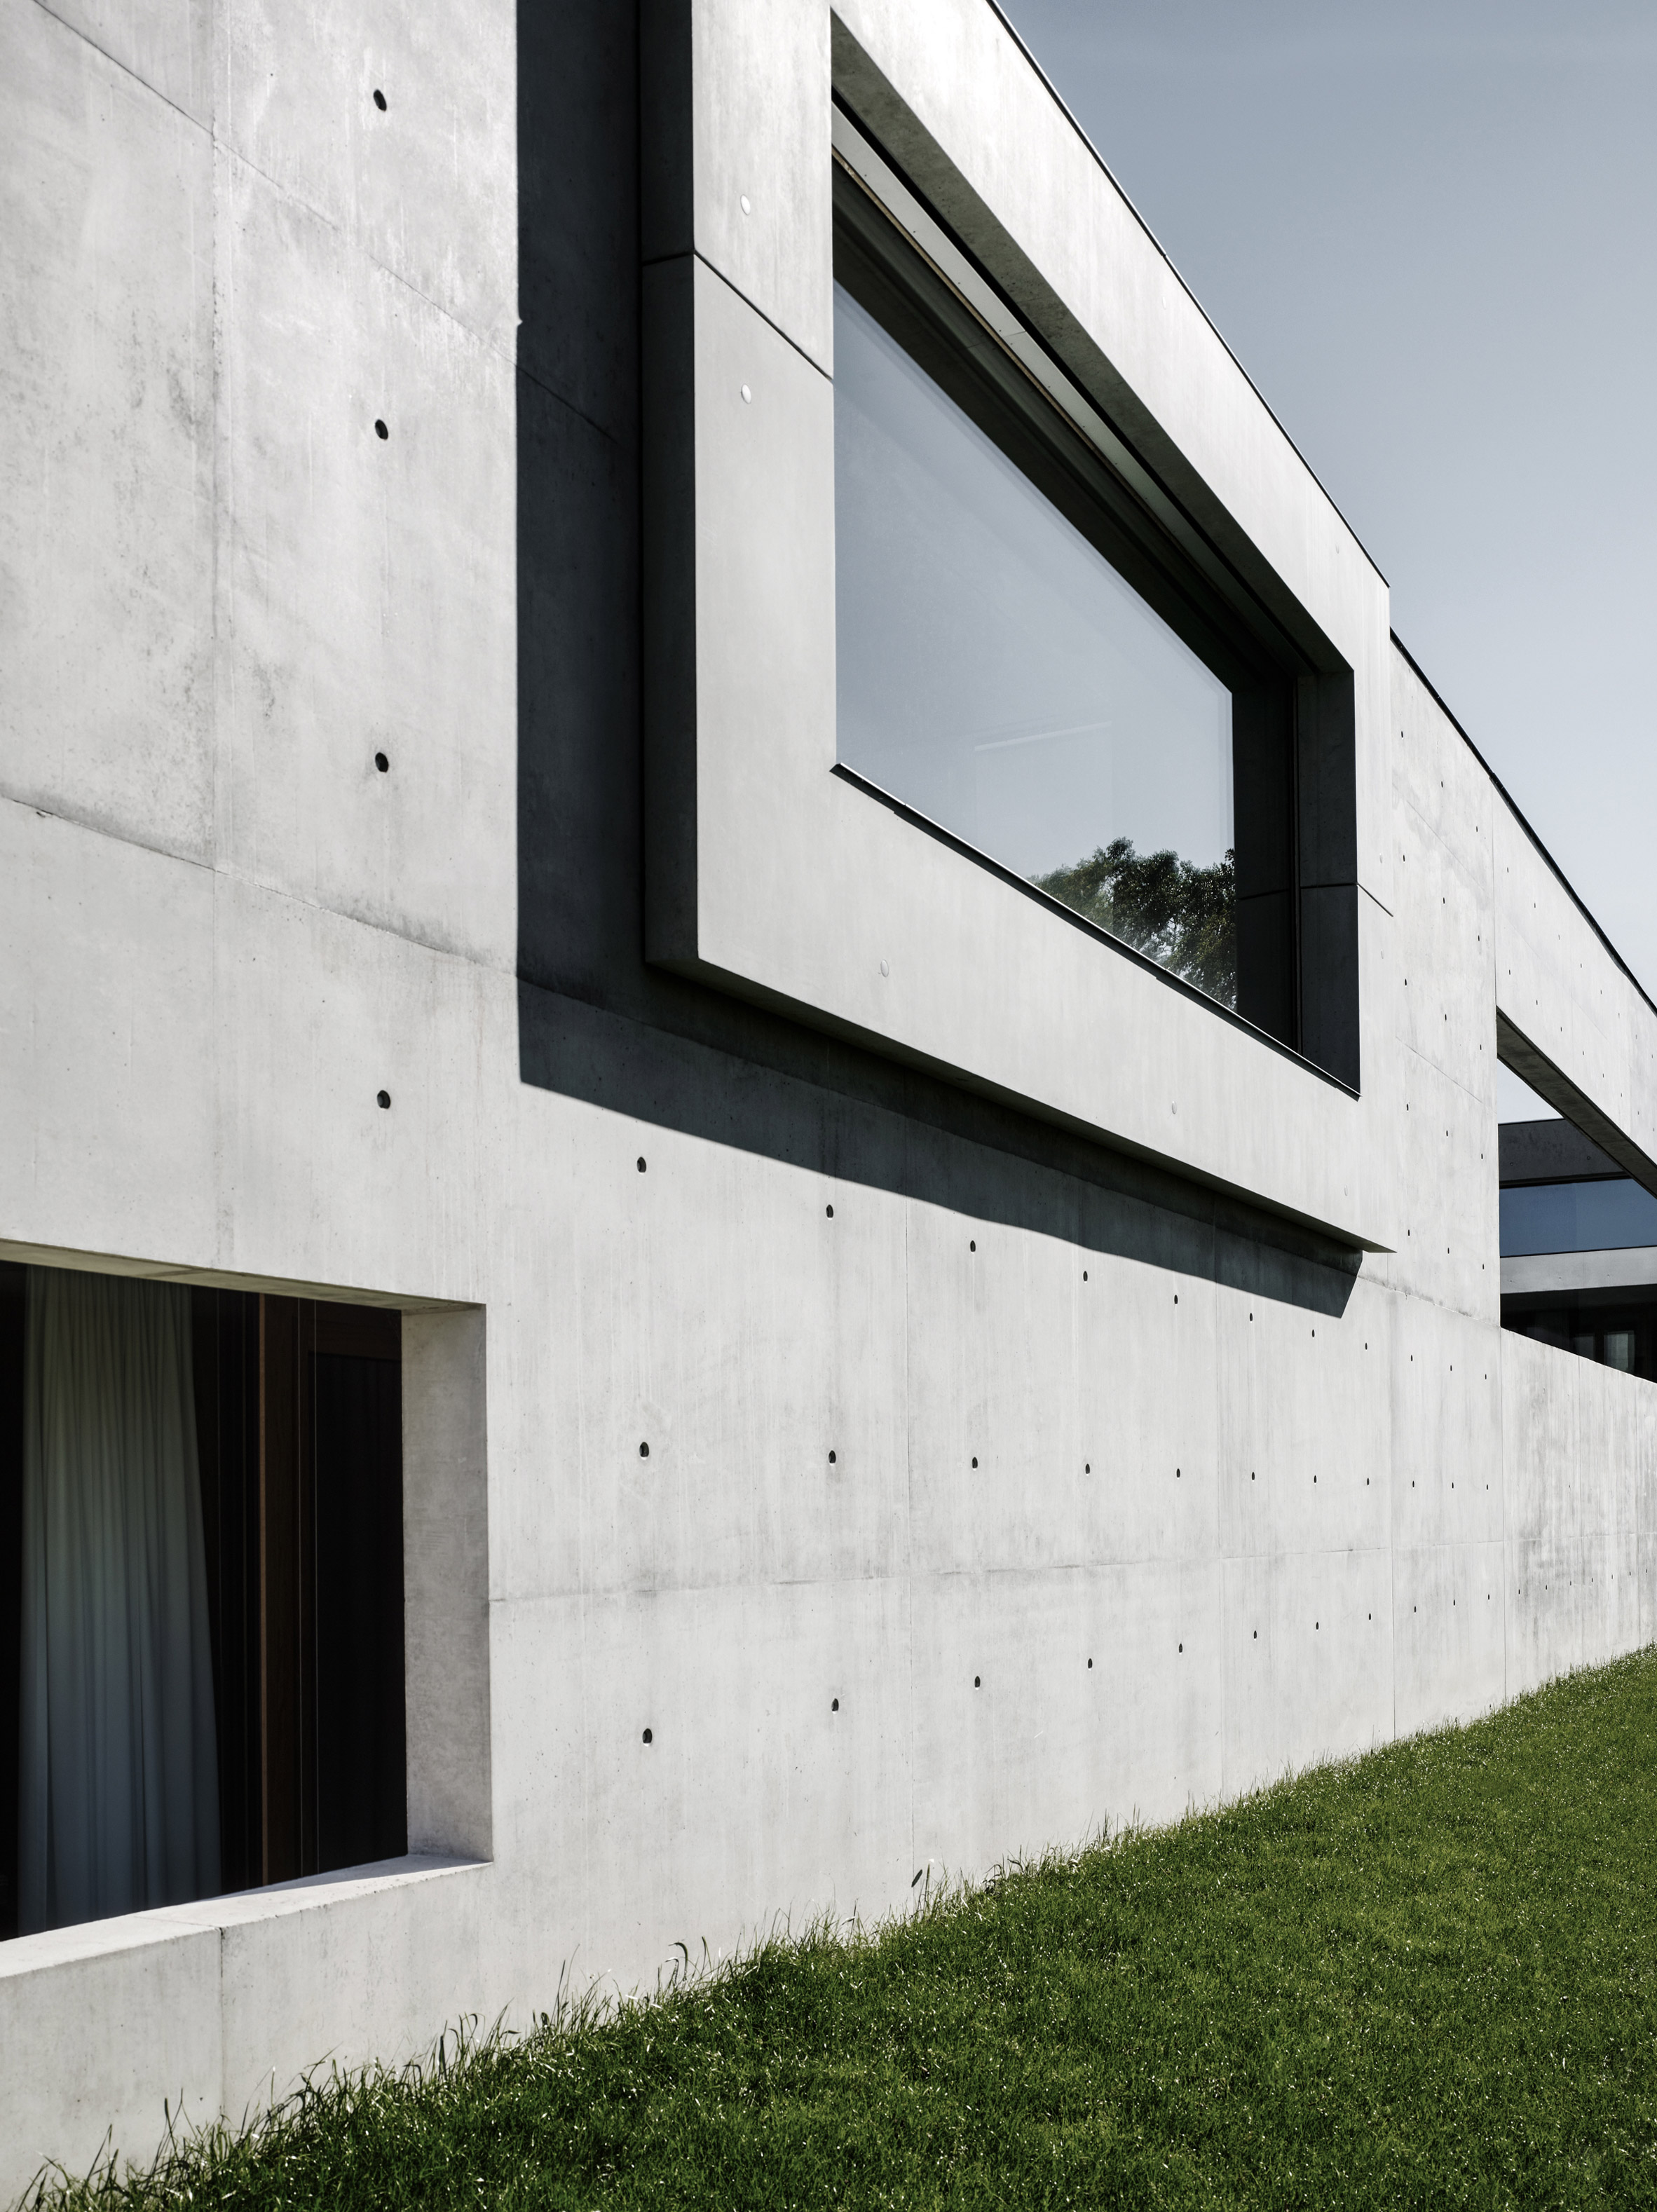 house of yards marte marte architects vorarlberg austria concrete swimming pool dezeen 2364 col 9